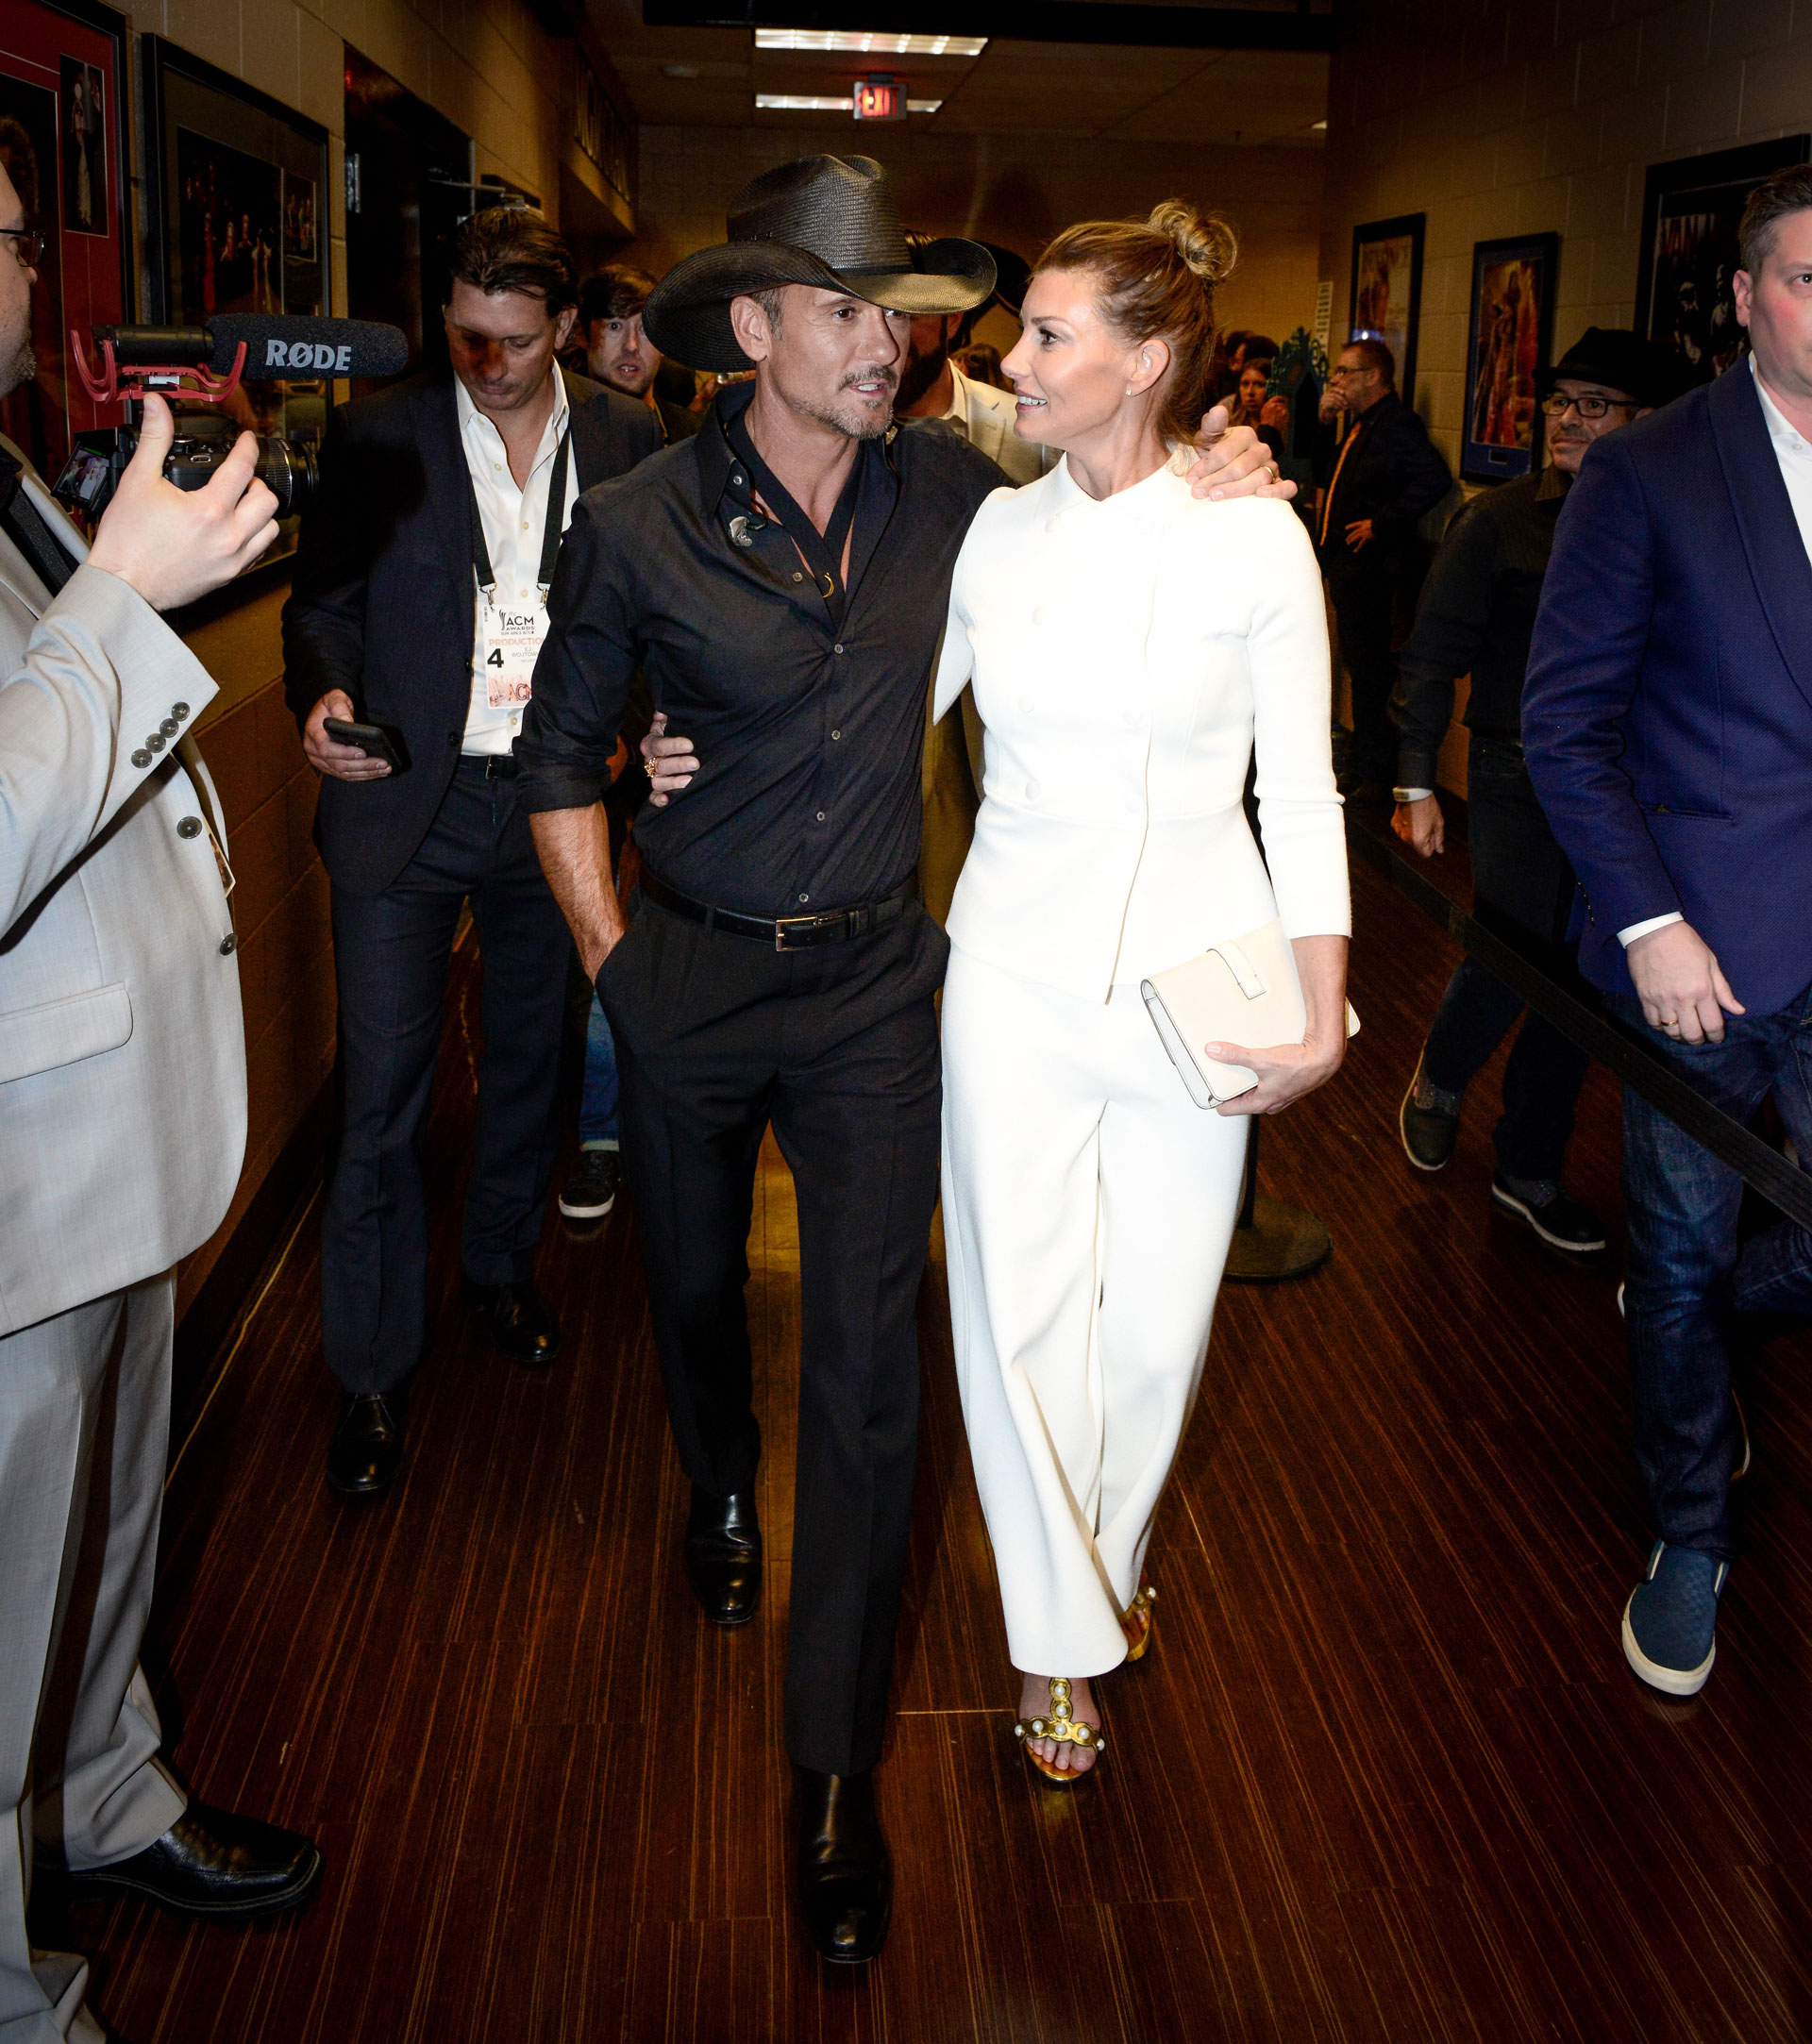 One of country's top power couples, Tim McGraw and Faith Hill, gave us all the feels when they looked like lovebirds backstage.